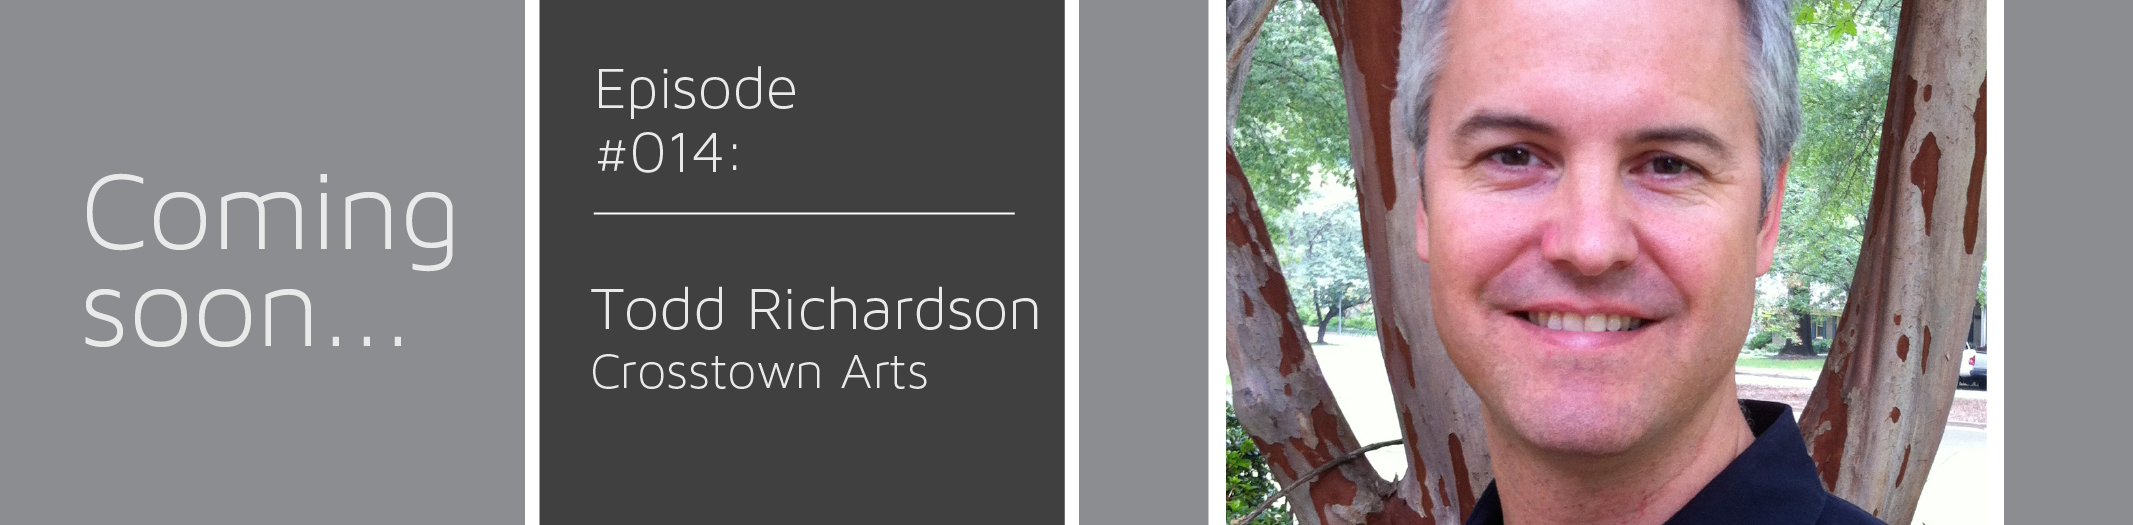 Todd Richardson | Crosstown Arts